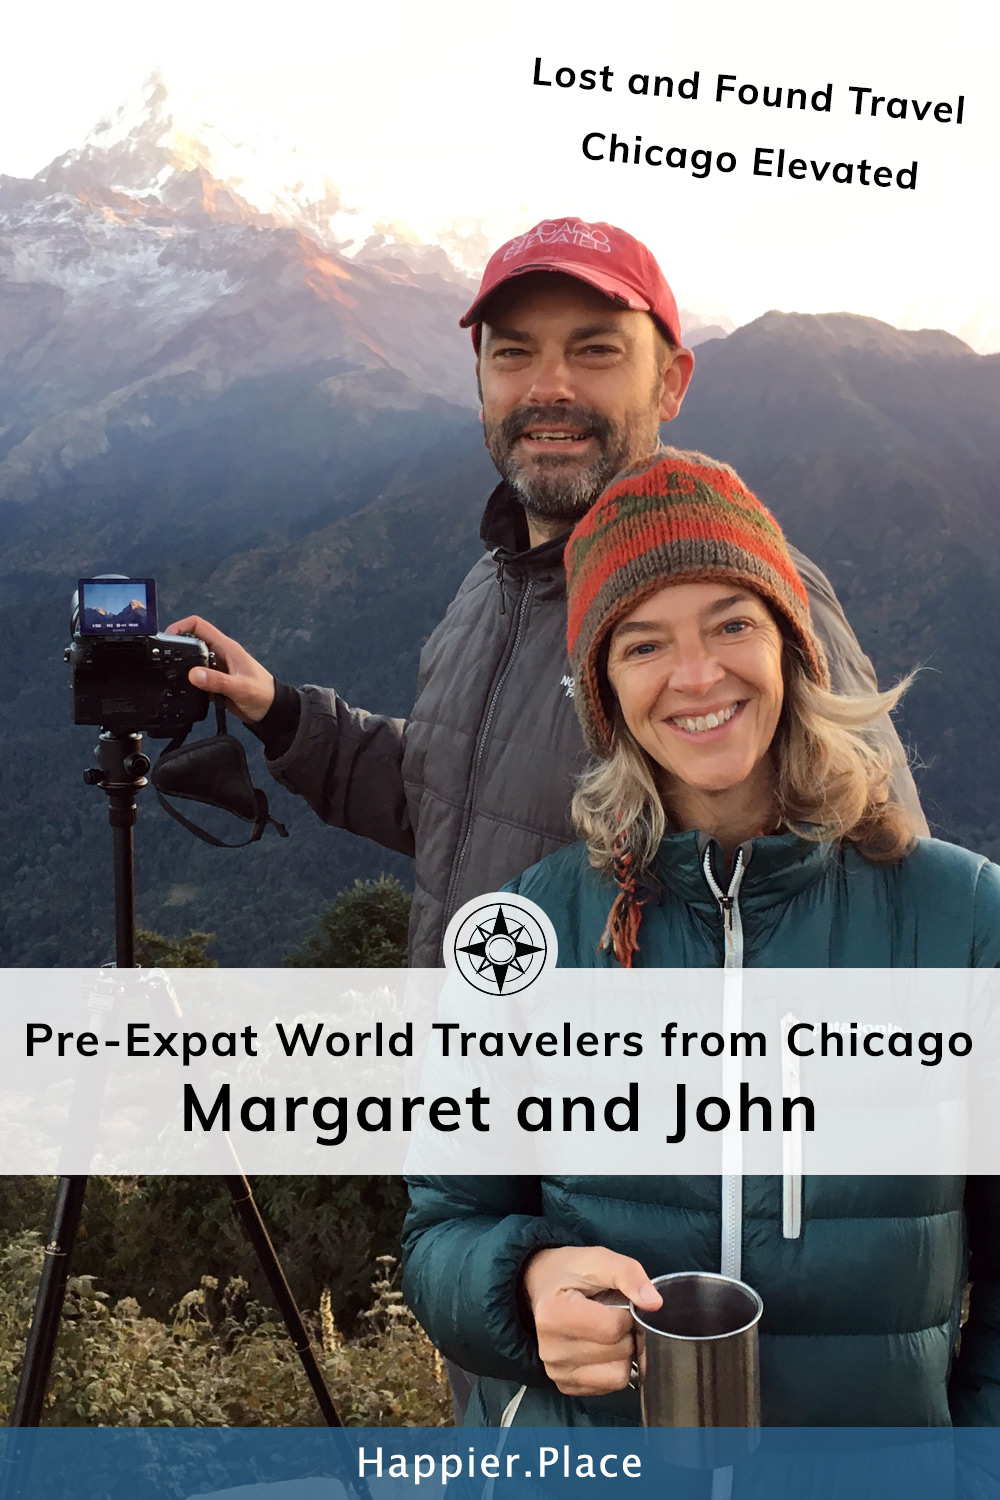 Margaret and John (Pre-Expat World Travelers from Chicago)